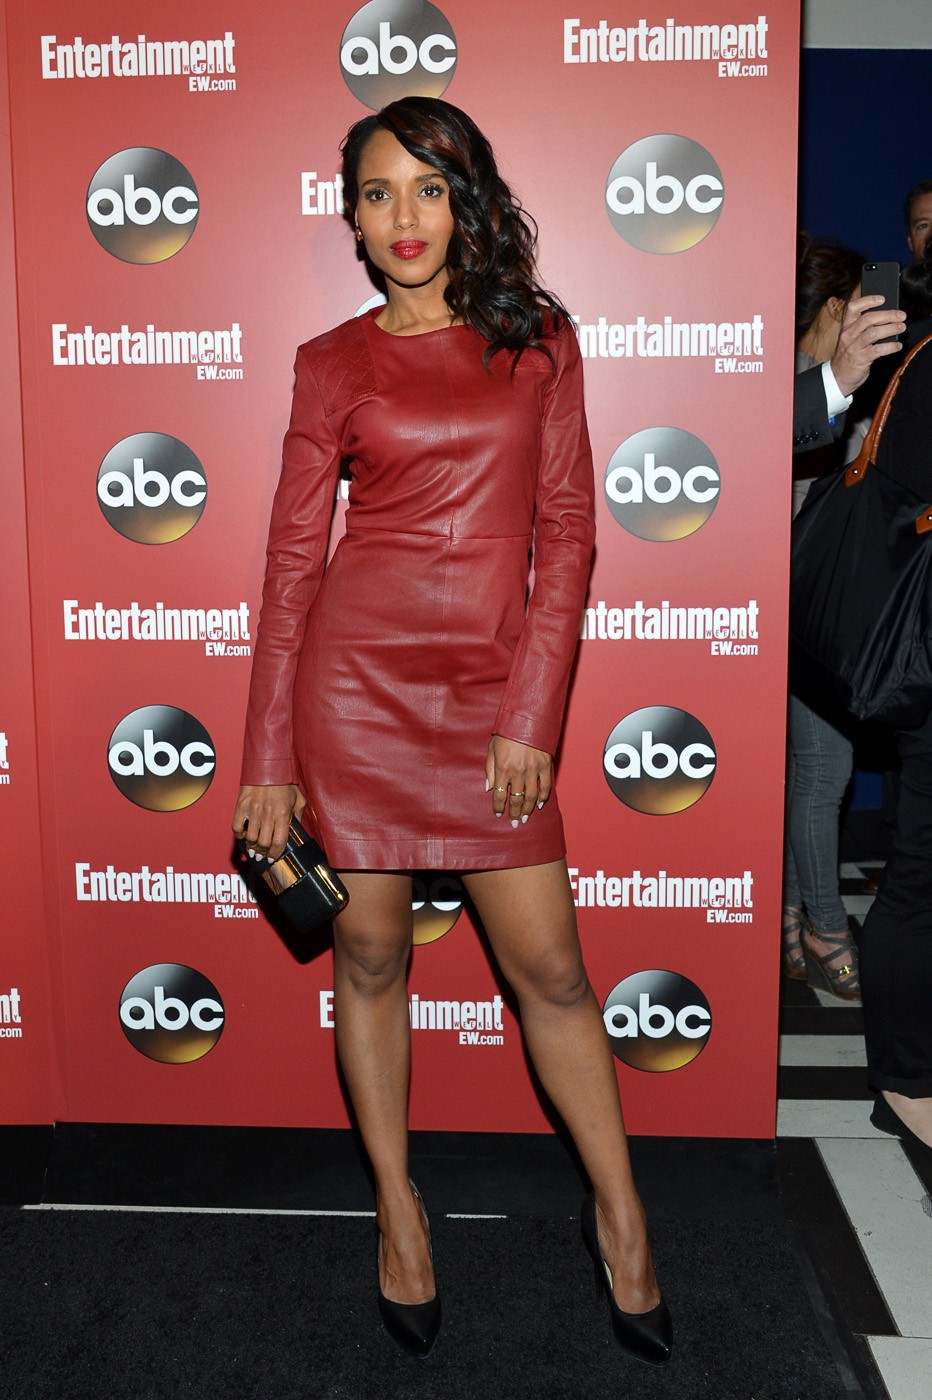 Top 9 Fashion Magazine Covers September 2013 Fashioncover: Top 9 At 9: Kerry Washington's Leather Obsession, D.C